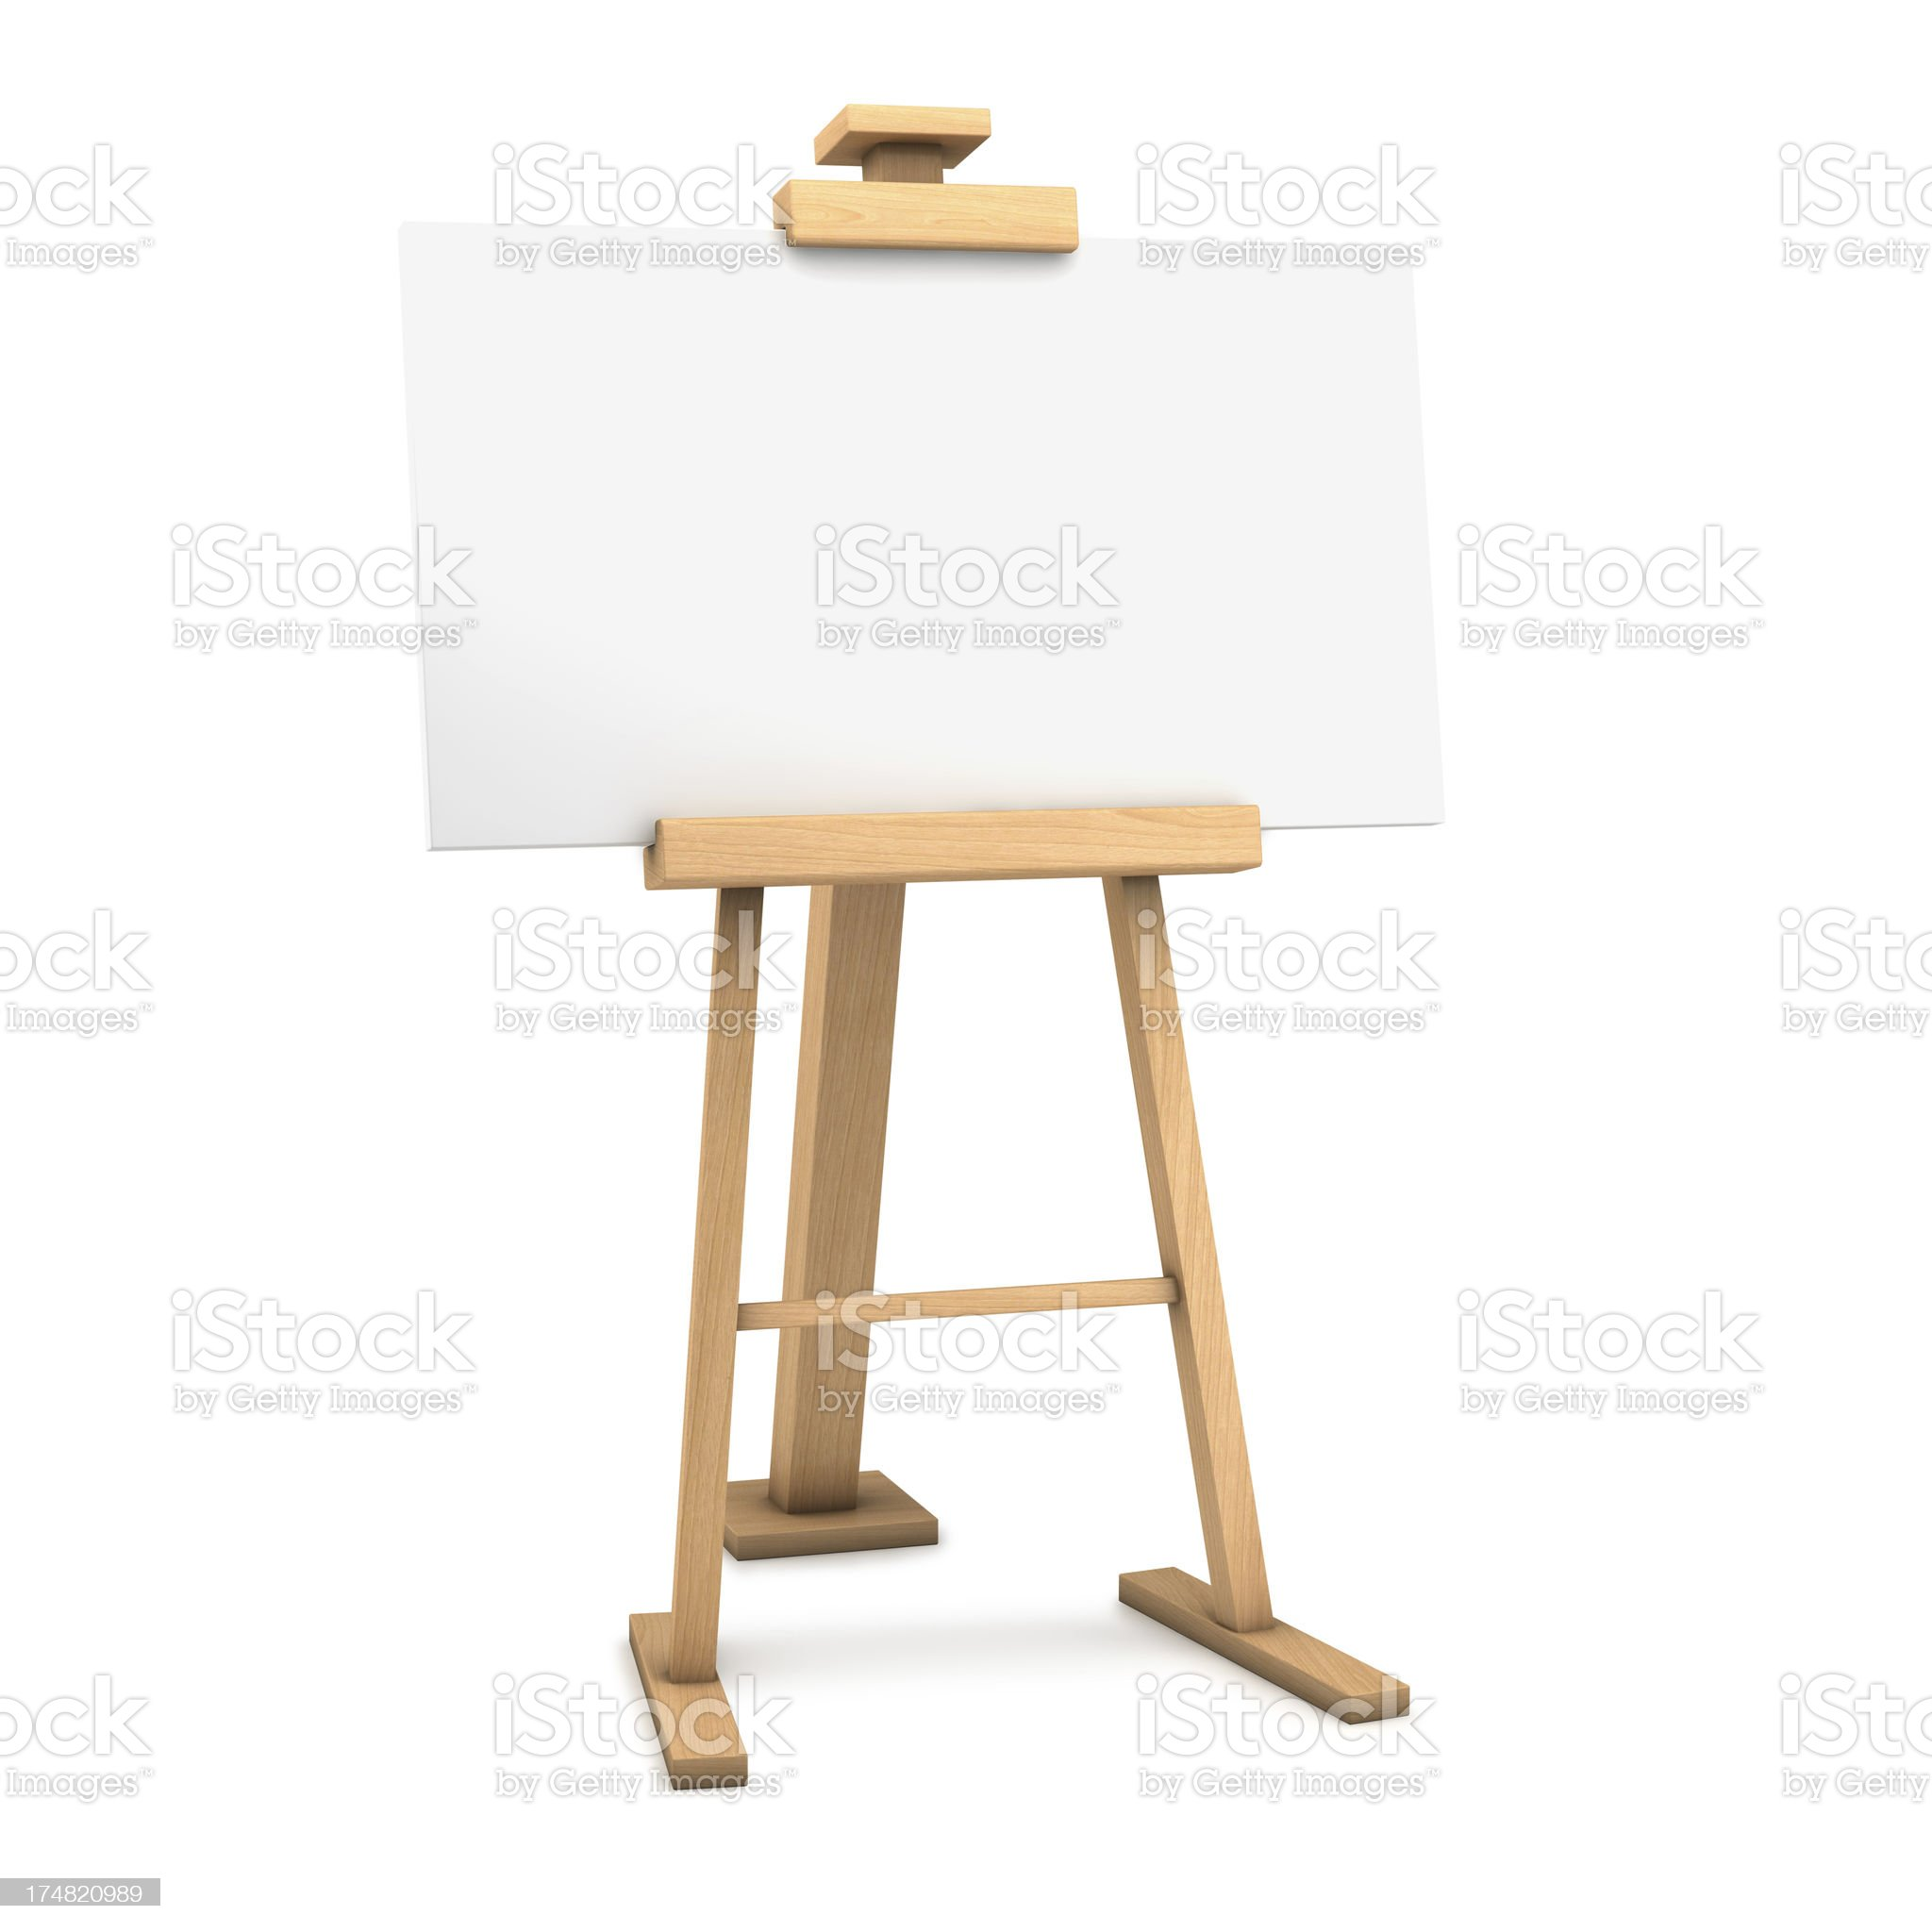 Wooden easel with blank canvas royalty-free stock photo